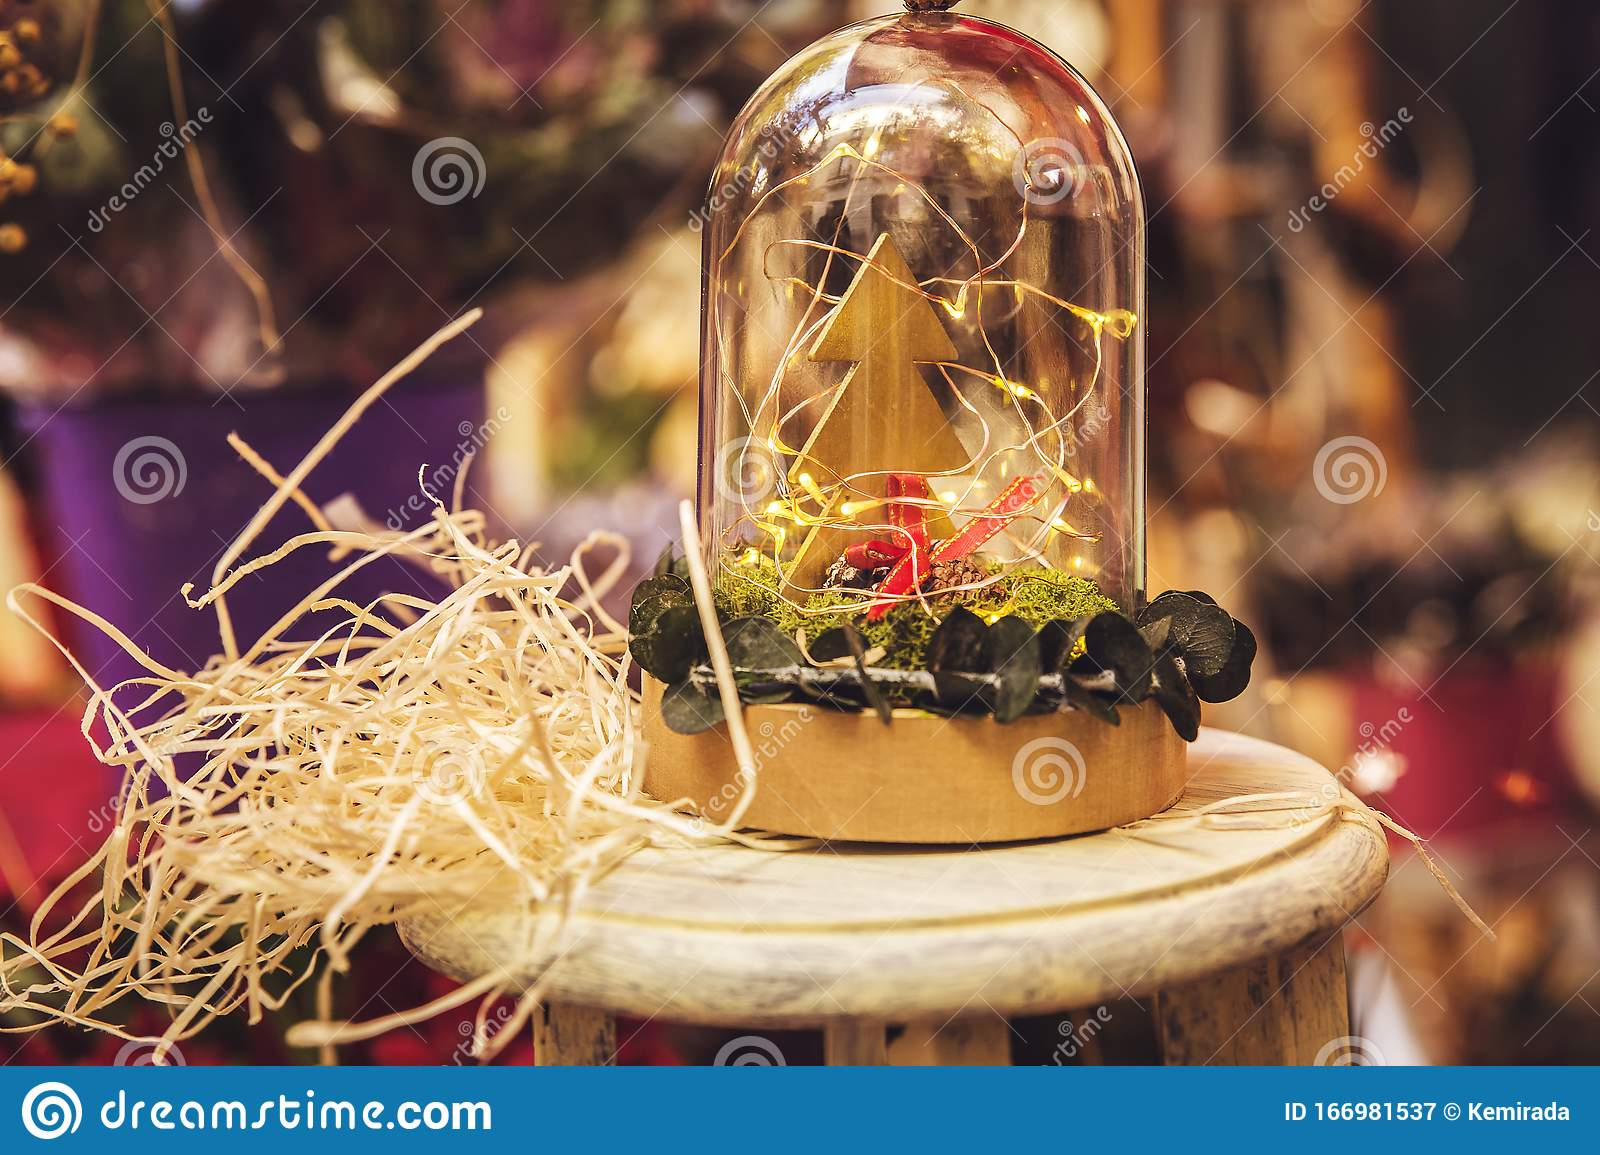 Small Wooden Christmas Tree Inside A Glass Container Stock Image Image Of Christmas Conservation 166981537